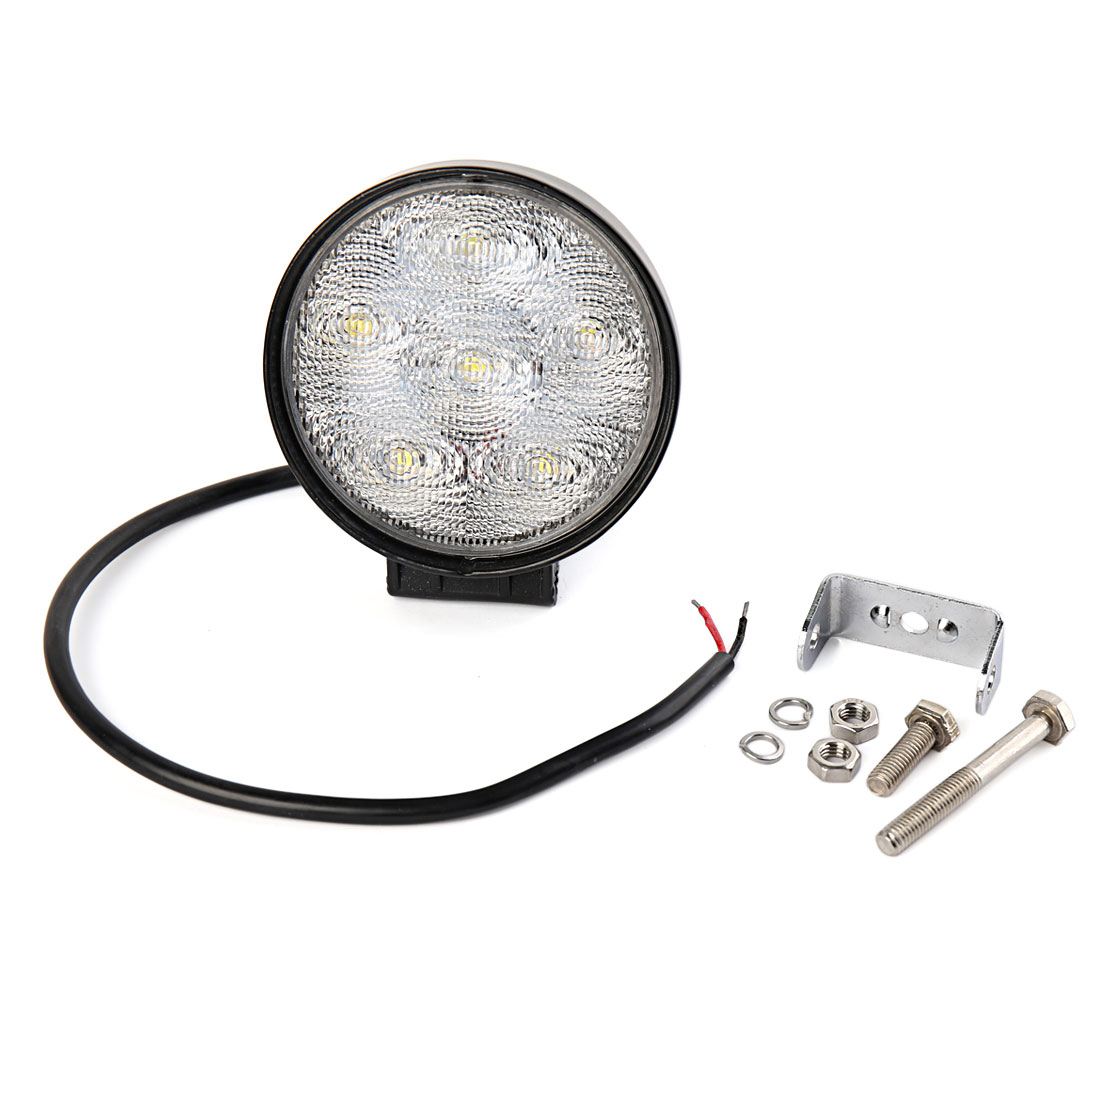 Round 18W LED Work Light Offroad Driving Lamp Truck Boat Bar 4WD 4x4 UTE White